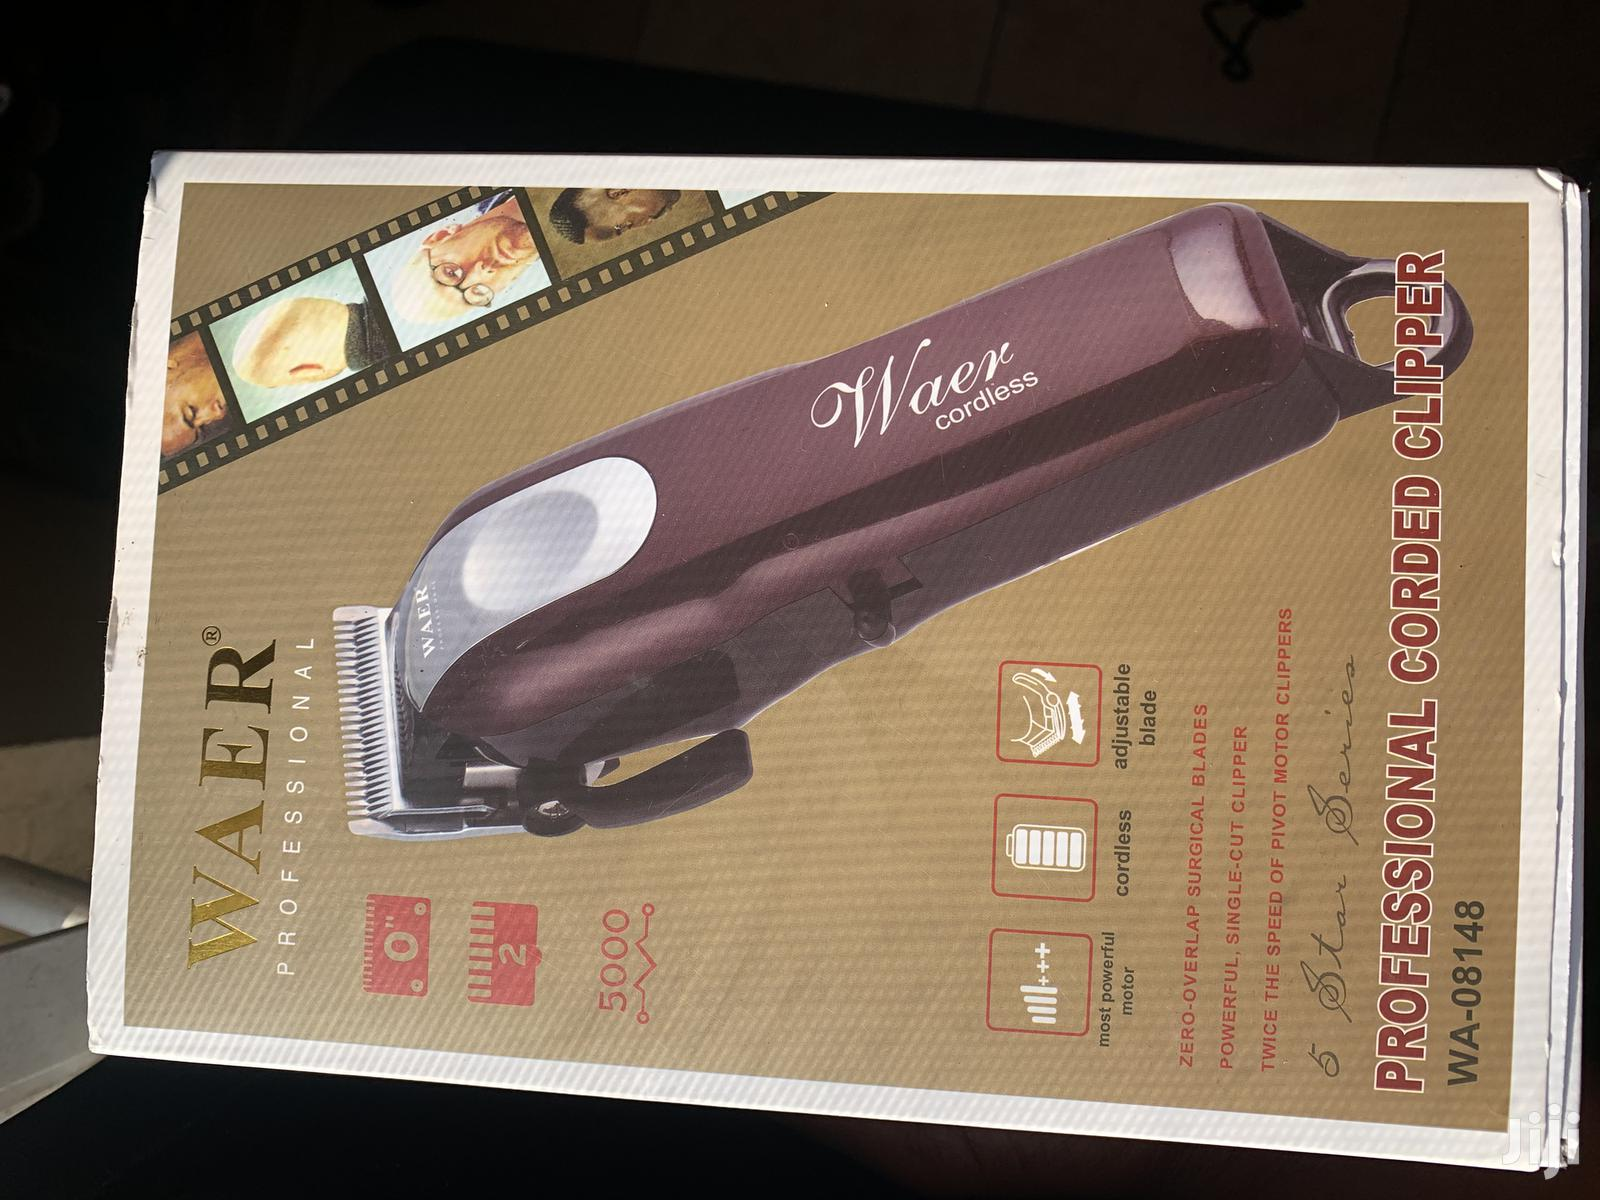 Waer Professional Cordless Clipper